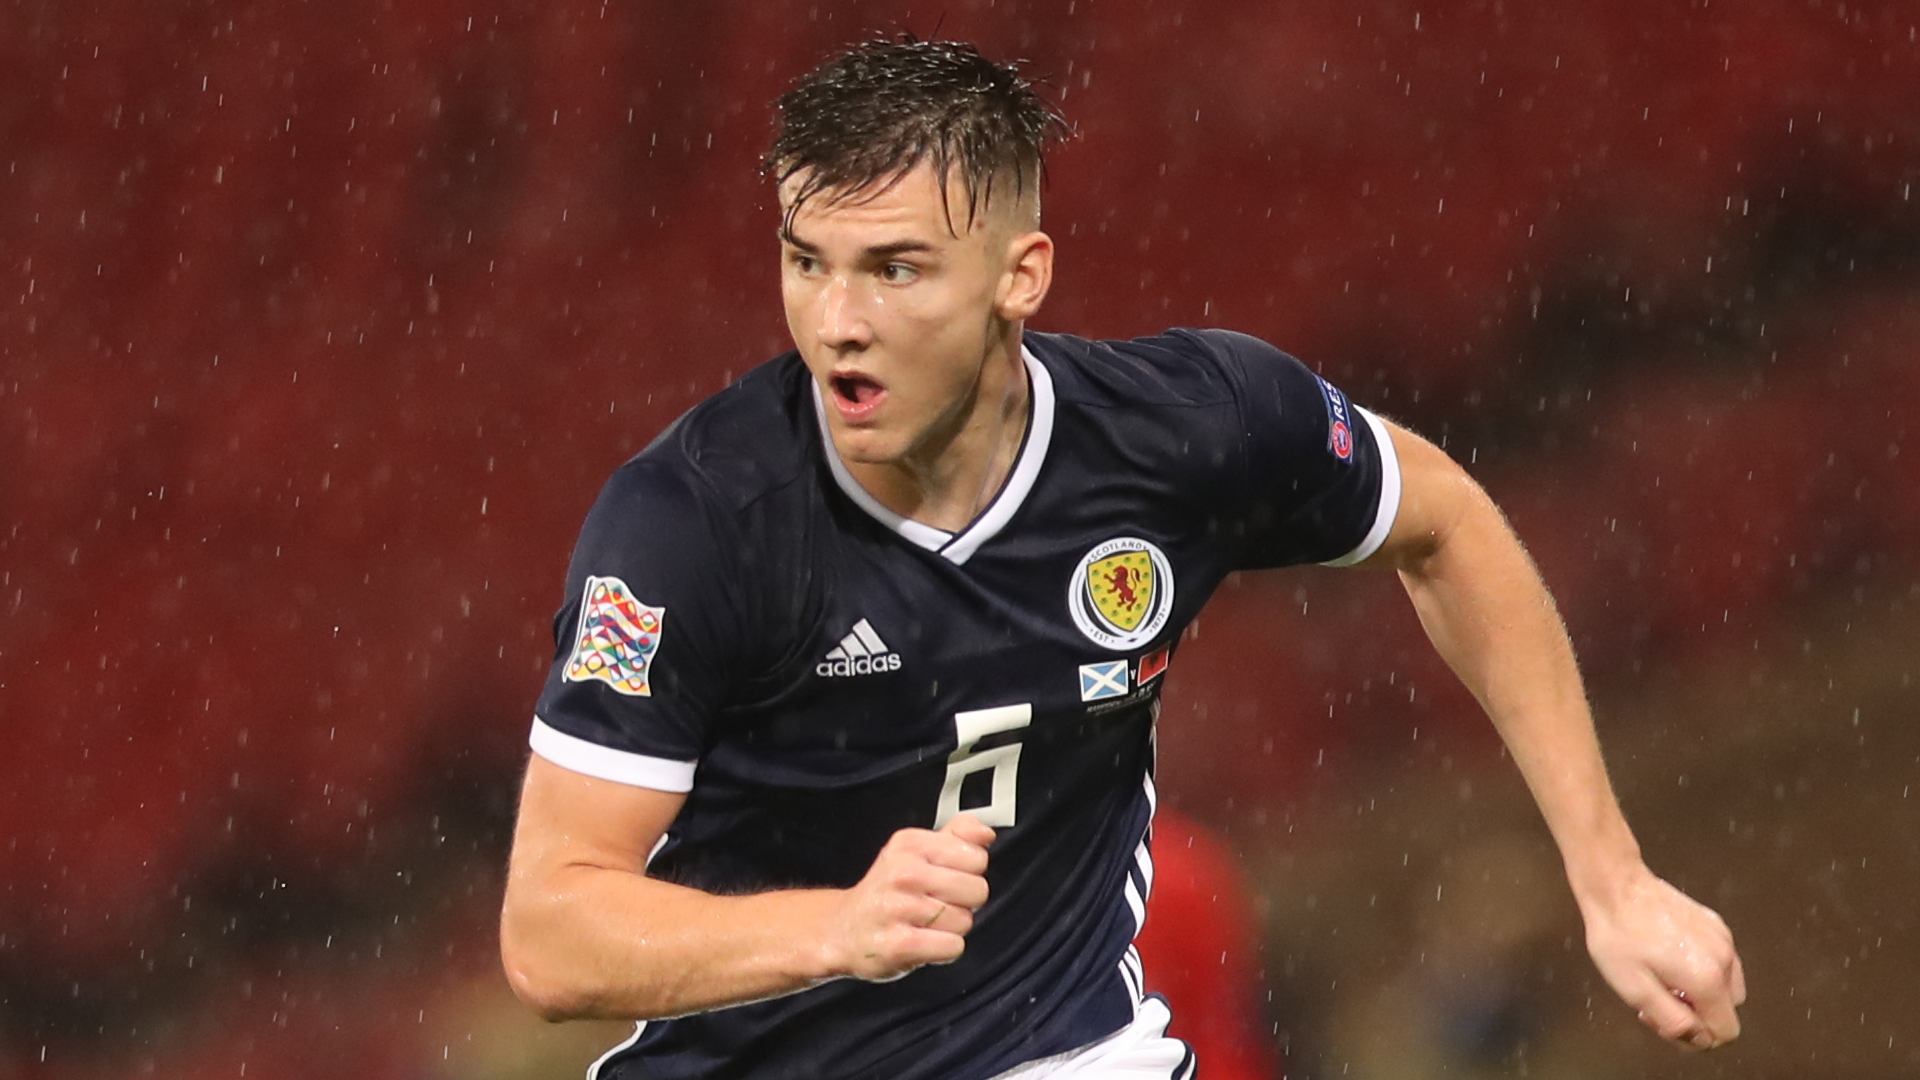 Celtic captain Brown: Tierney made fairytale Arsenal move